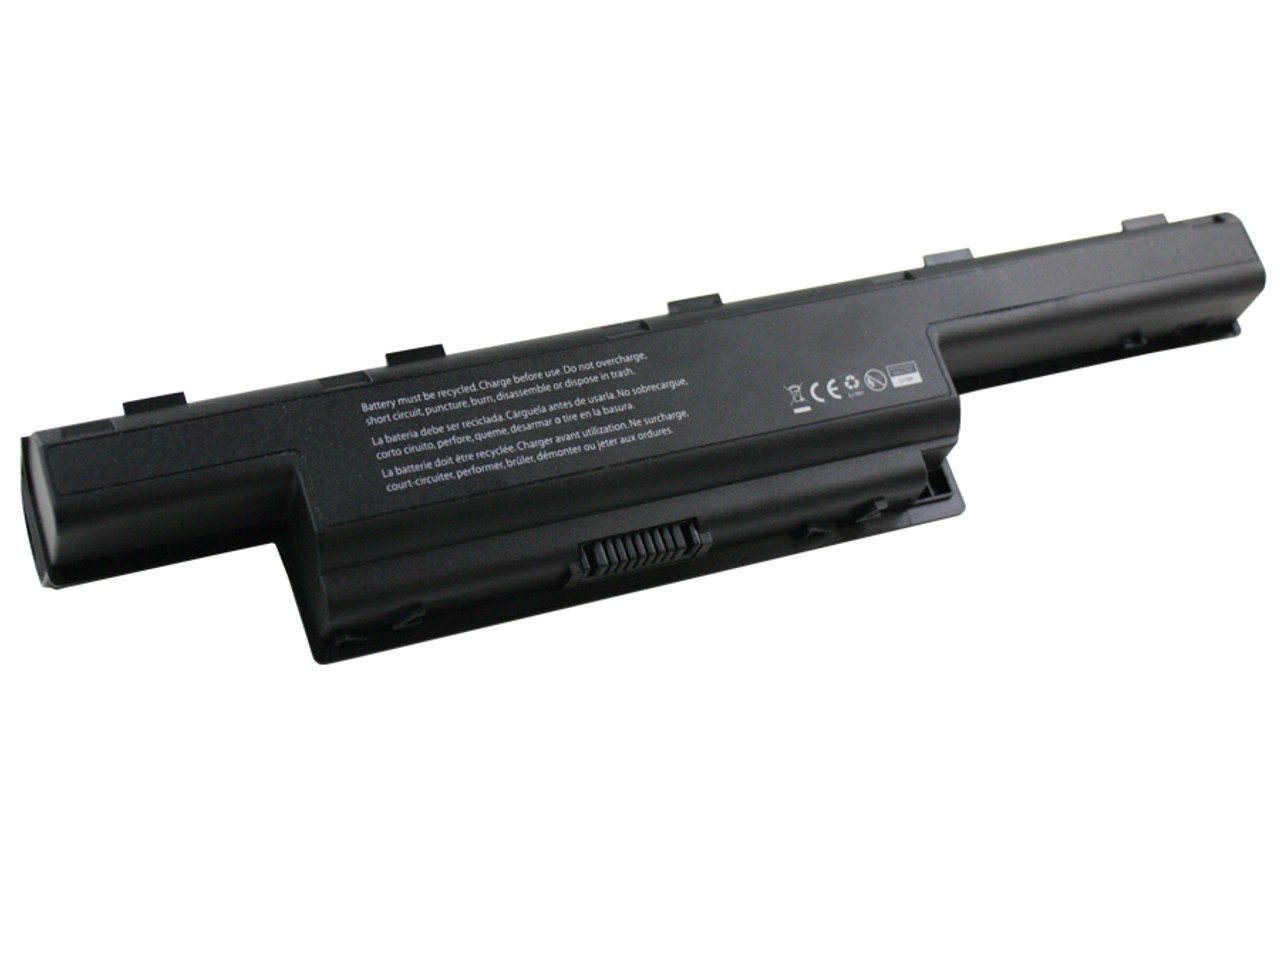 Replacement battery for NV50A,NV51B,NV53,NV53A,NV55C,NV73A,NV79,NV79c Various Acer Aspire & Travelmate model...